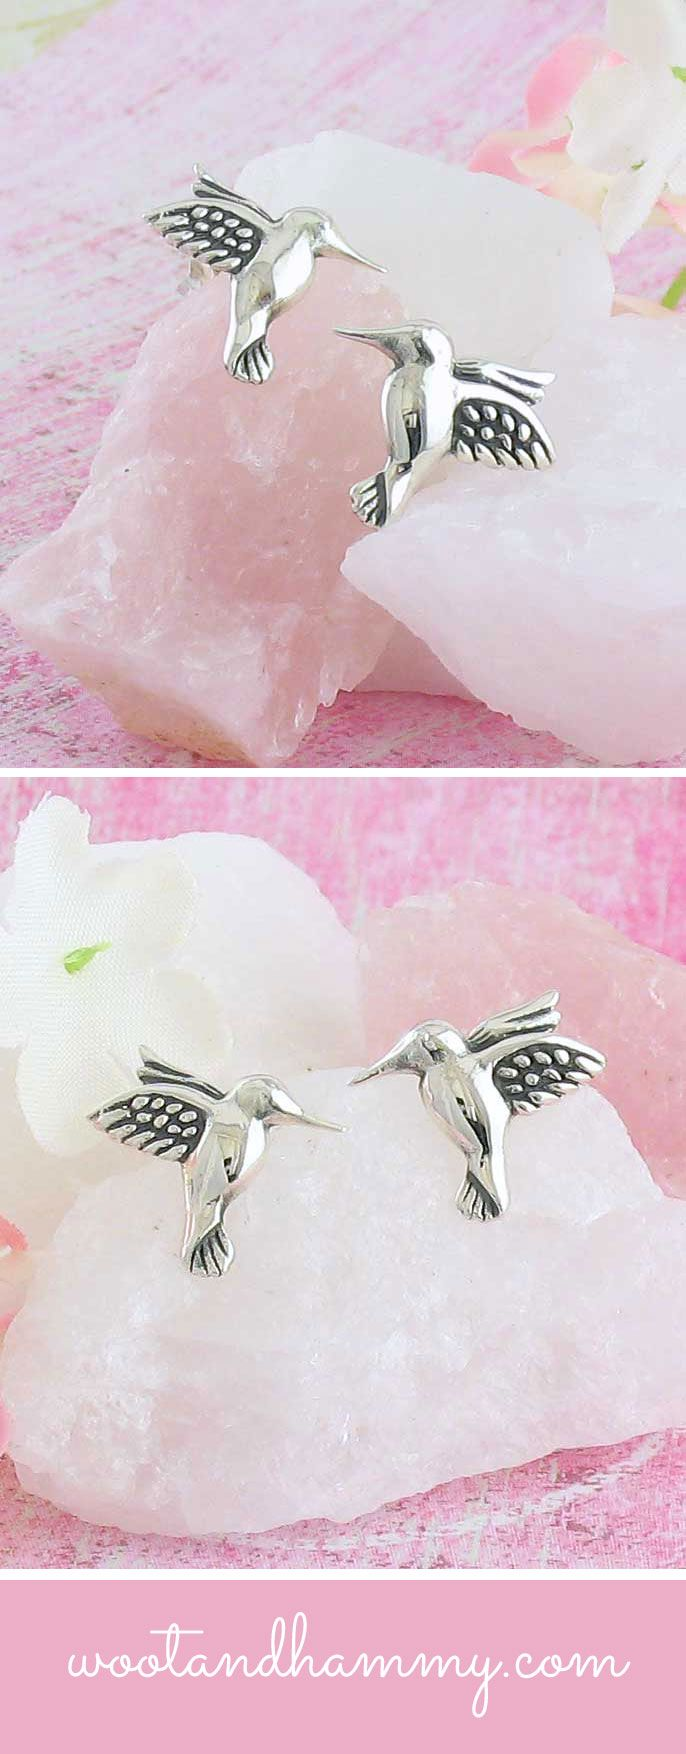 503 best Jewelry images on Pinterest | Jewelery, Animal jewelry and ...